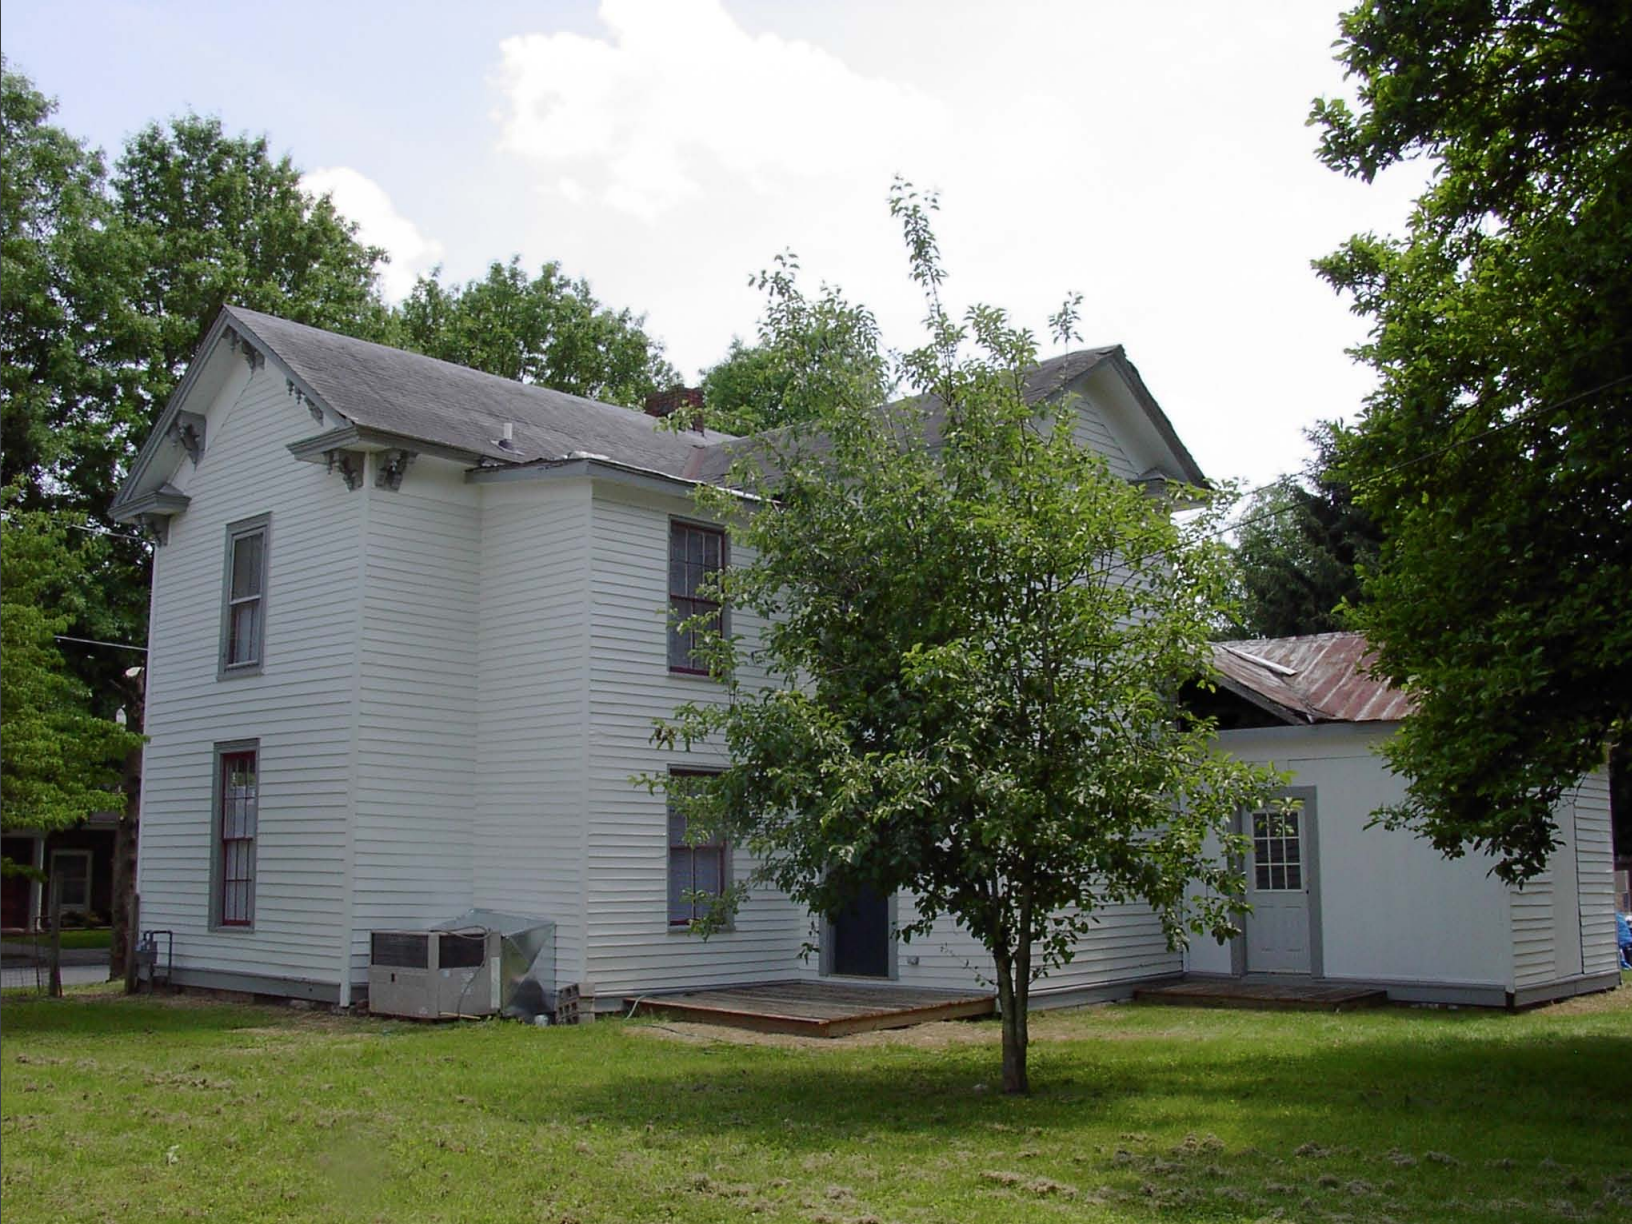 Rear view of the house in 2008